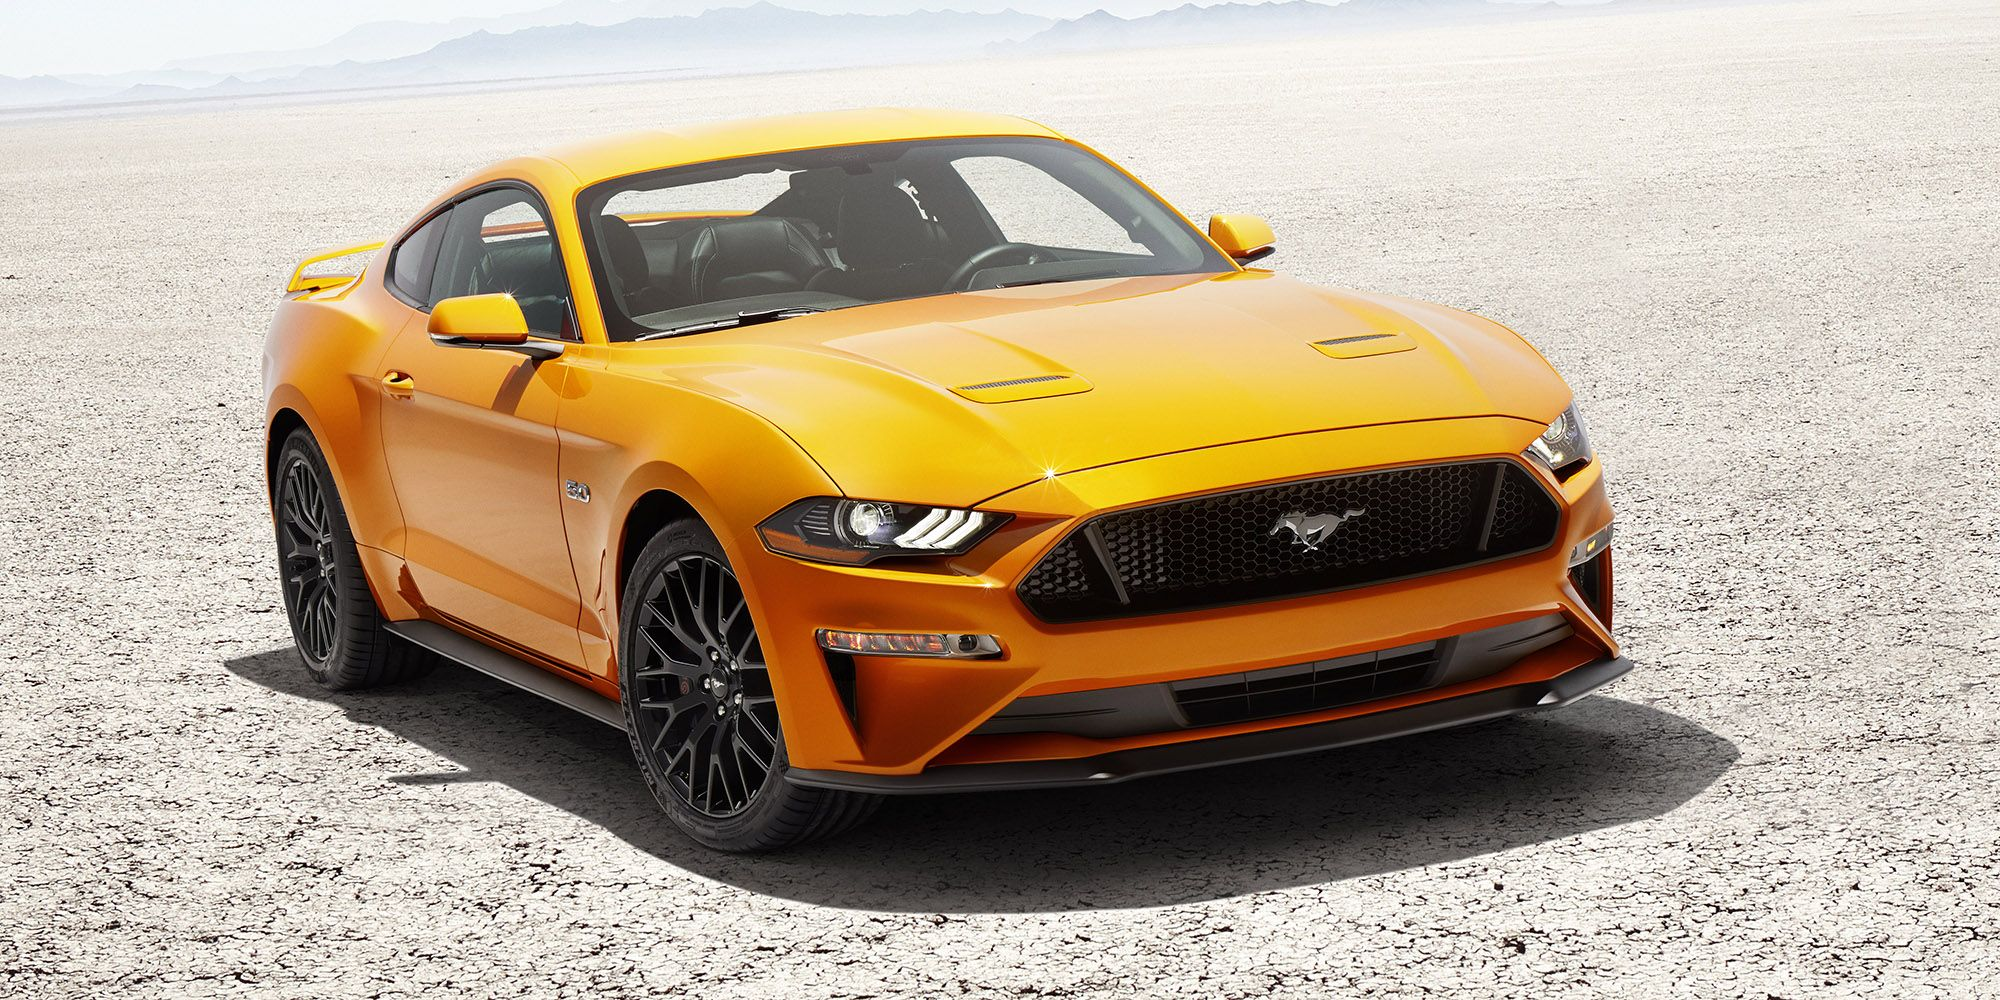 2018 Mustang Gt Pricing >> 2018 Ford Mustang Price Starts At 25 585 Msrp For Mustang